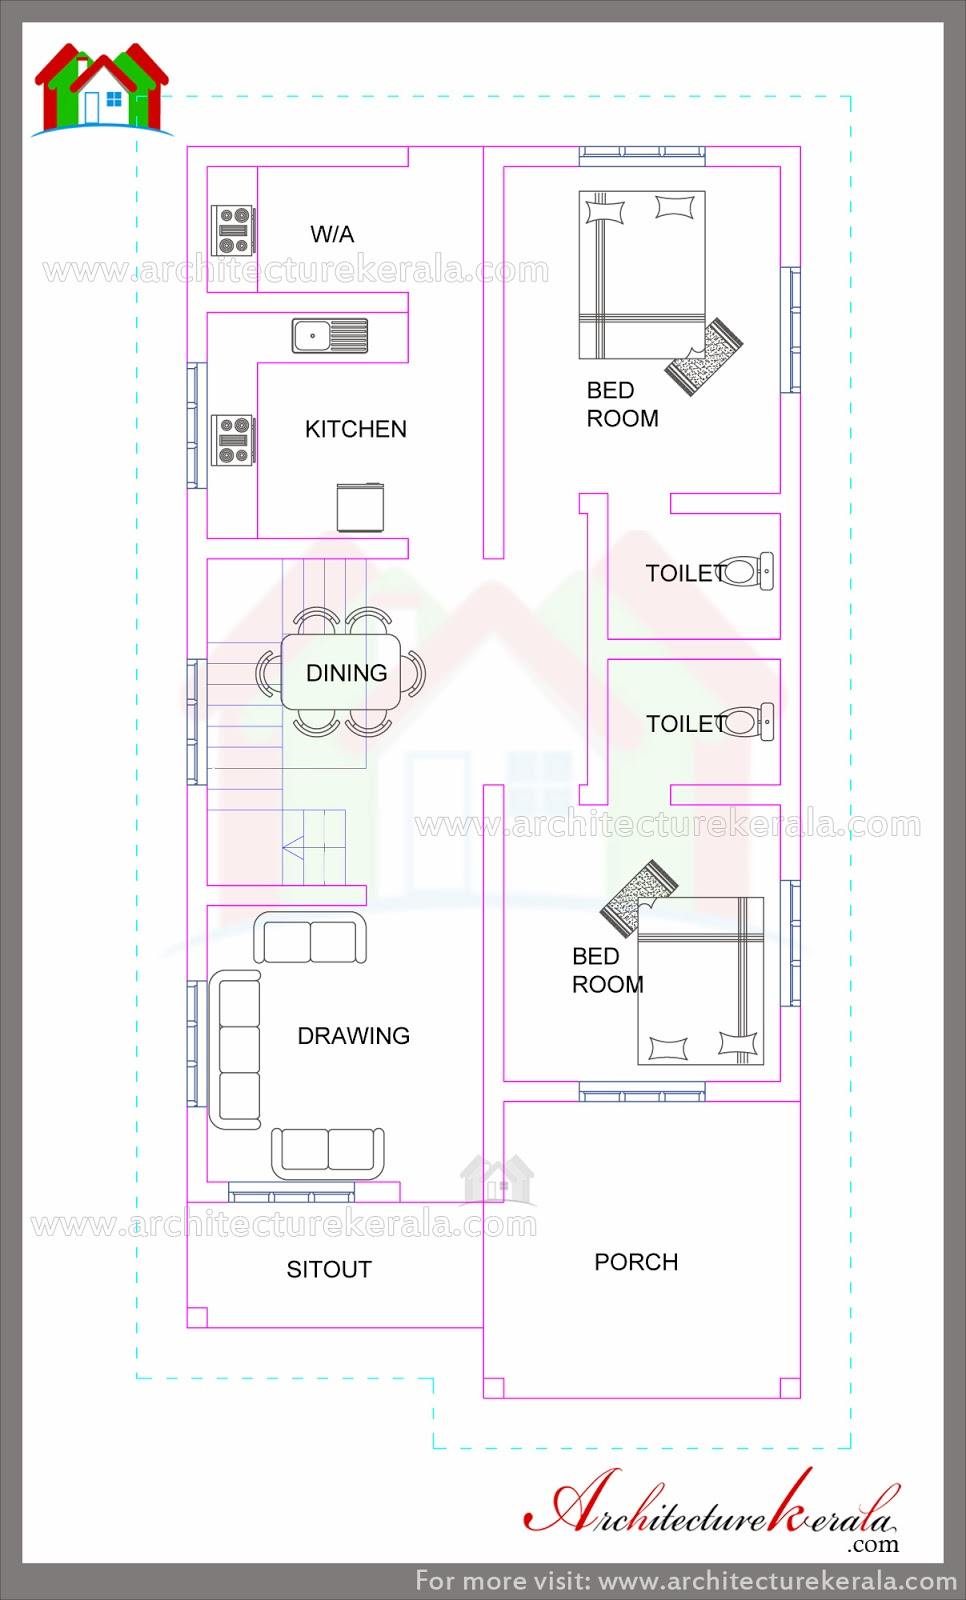 What is the cost of building a 4 bedroom for Cost to build 4 bedroom home